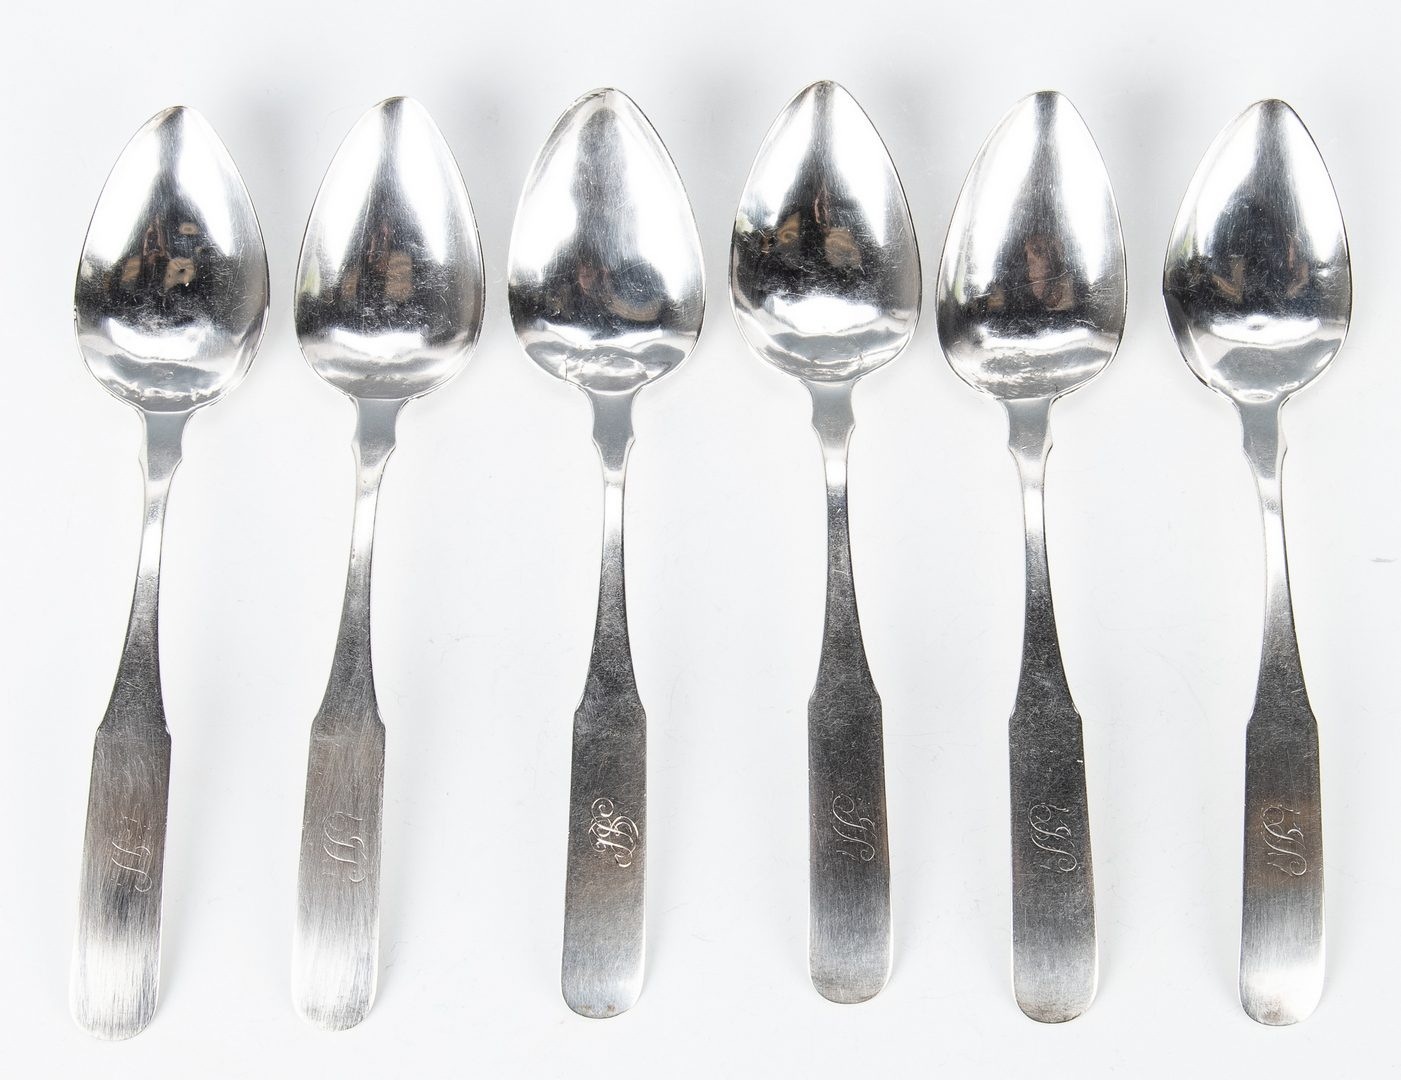 Lot 188: 11 TN Coin Silver Spoons, Samuel Bell and Atkinson & Boyce